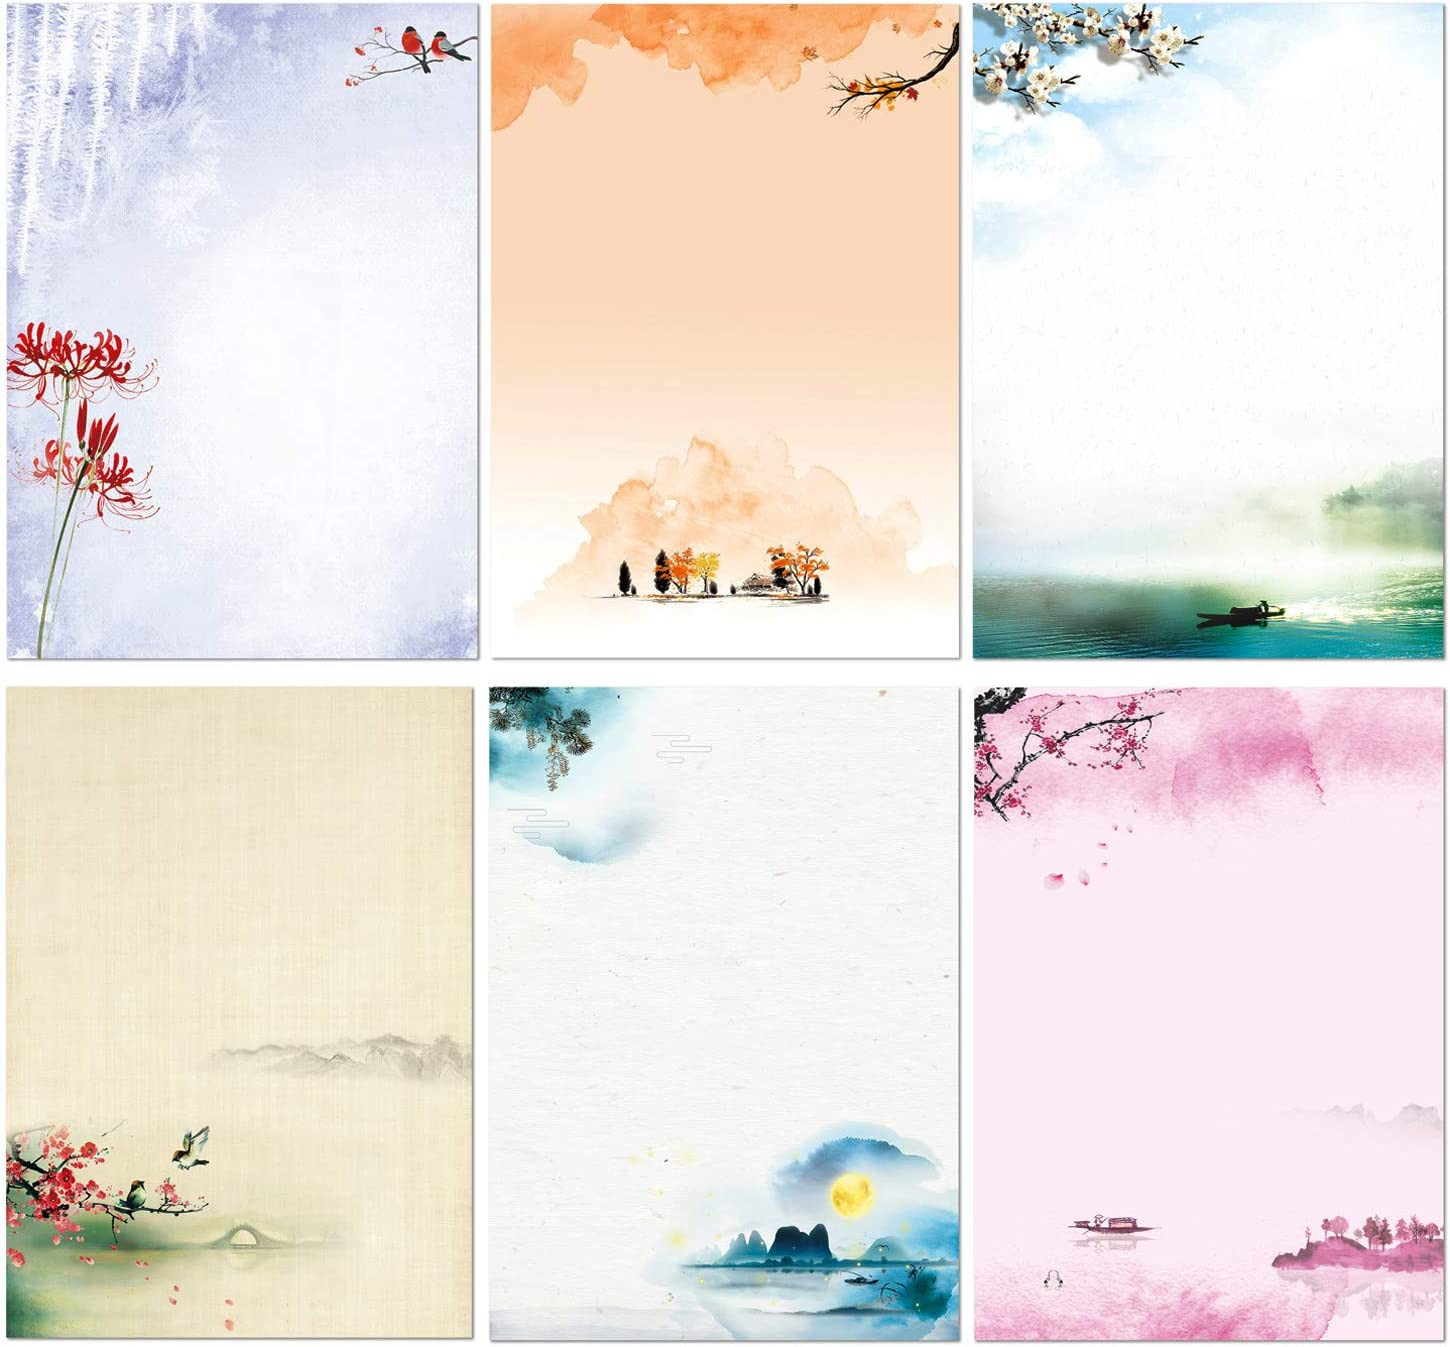 Stationary Set Japanese Stationery Letter Writing Paper, 48 Pack Stationary paper and envelopes set Ink Painting Design - 48 Stationary papers + 24 Envelopes : Office Products